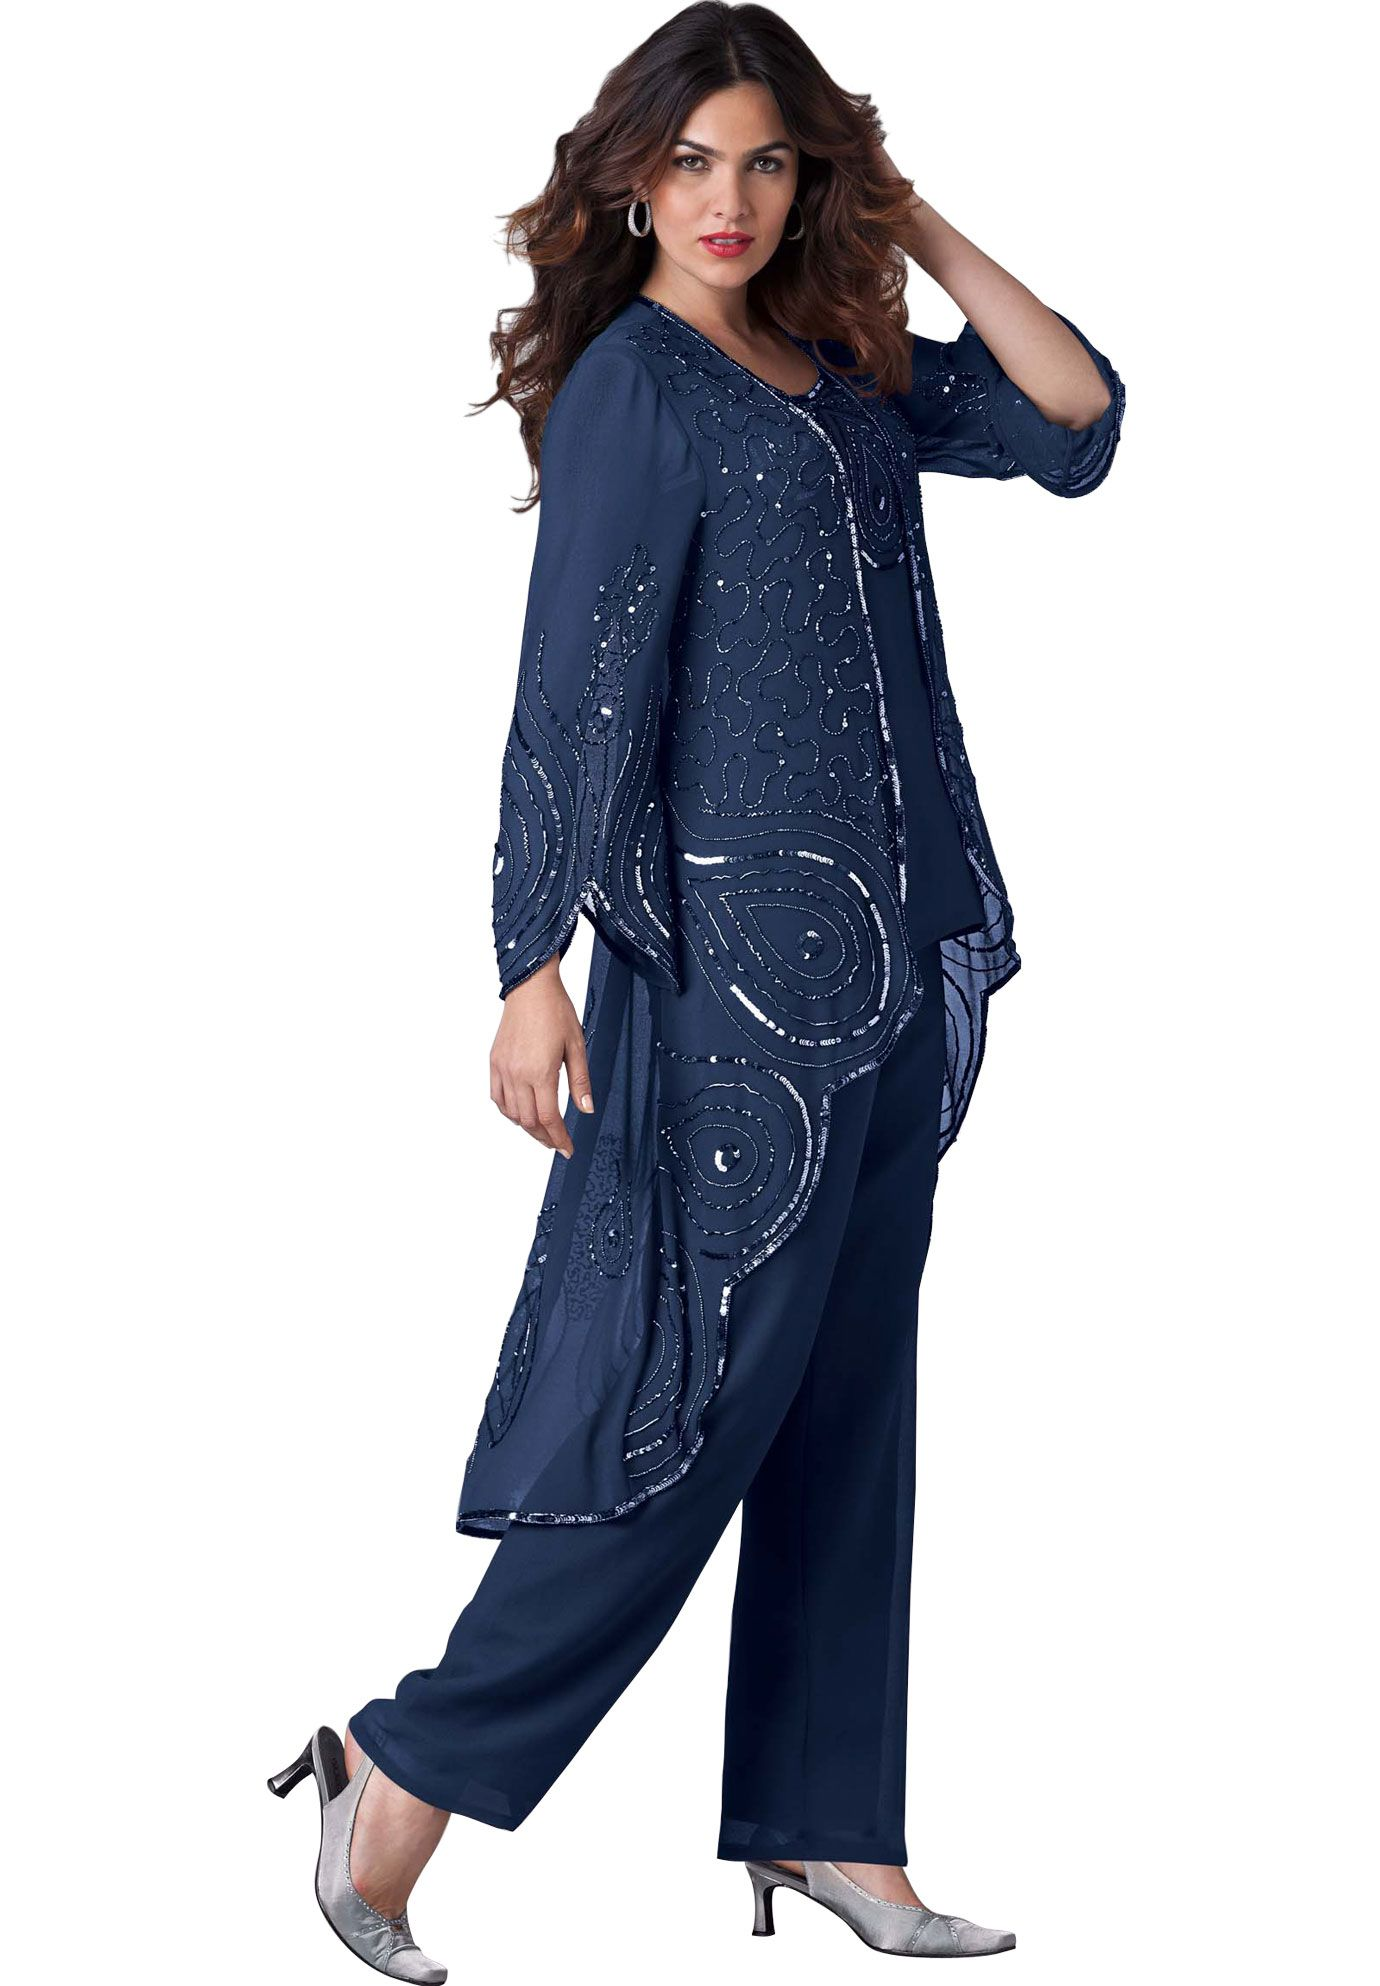 Sparkling sequins and beads adorn the sheer geor te duster and